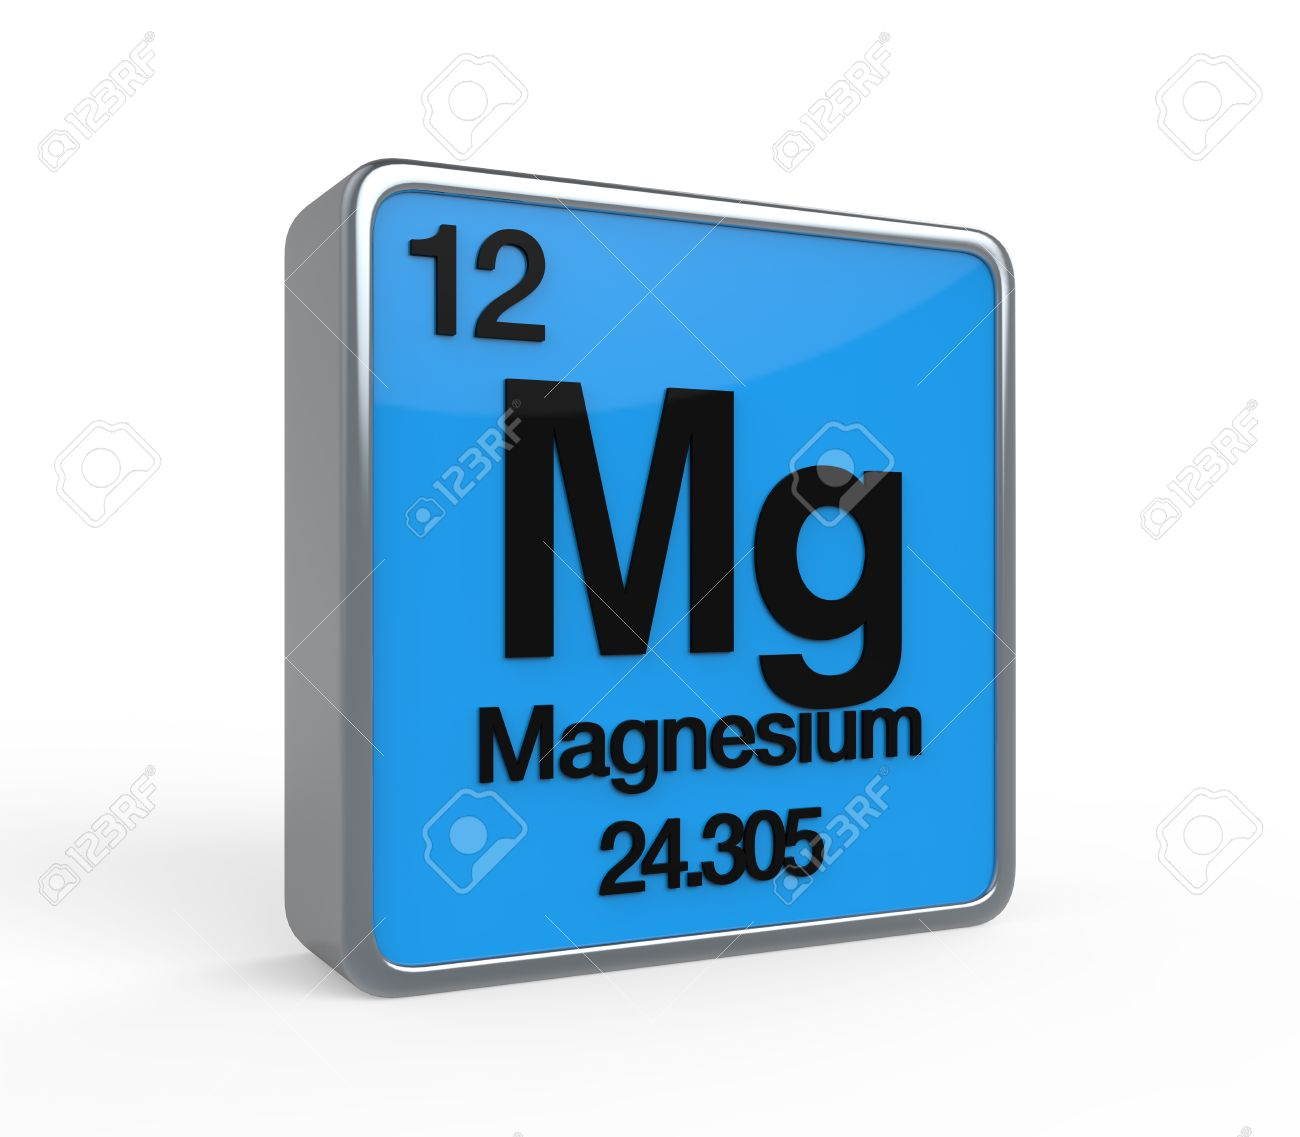 Magnesium element periodic table stock photo picture and royalty magnesium element periodic table stock photo 20533997 gamestrikefo Gallery